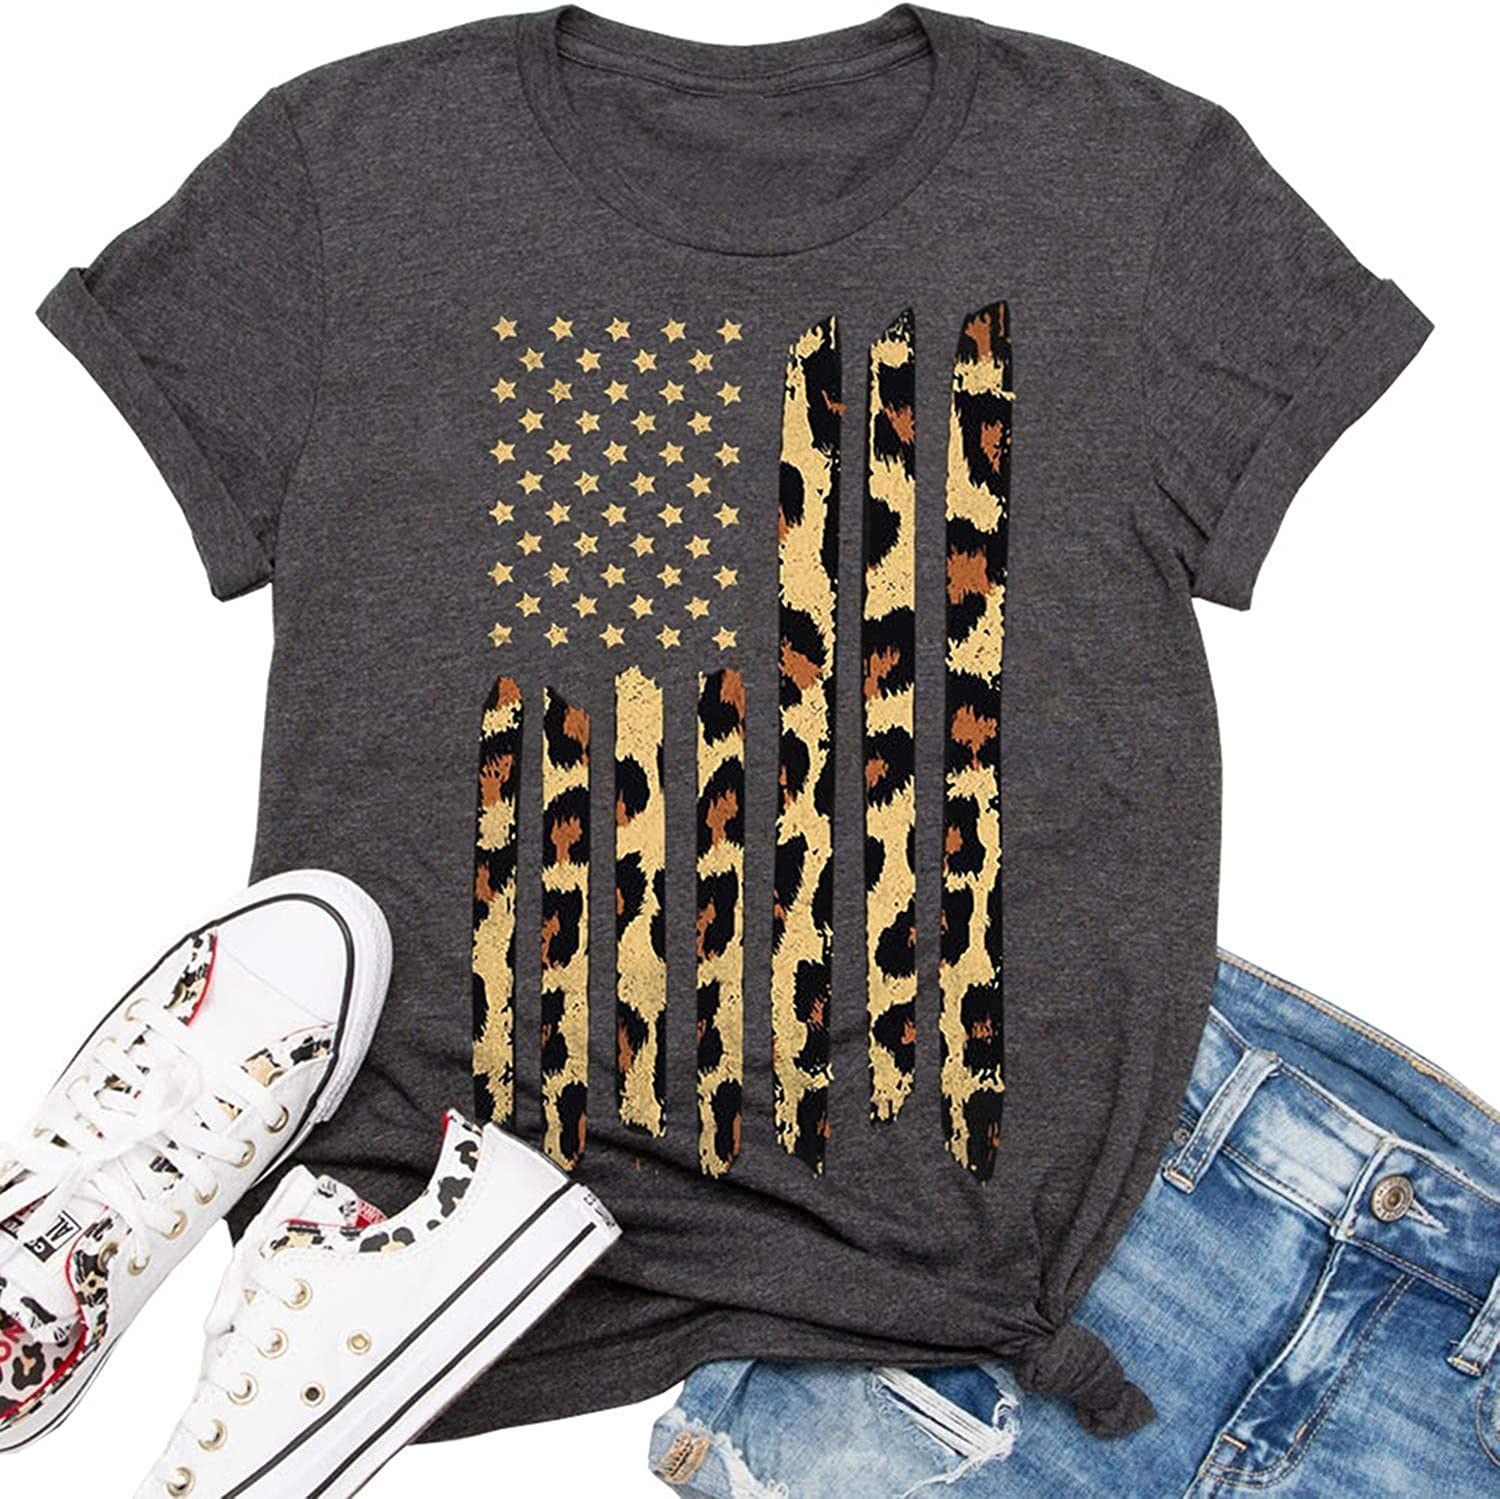 Beopjesk Womens American Flag T-Shirt Cute July 4th Independence Day Patriotic Graphic Tees Tops